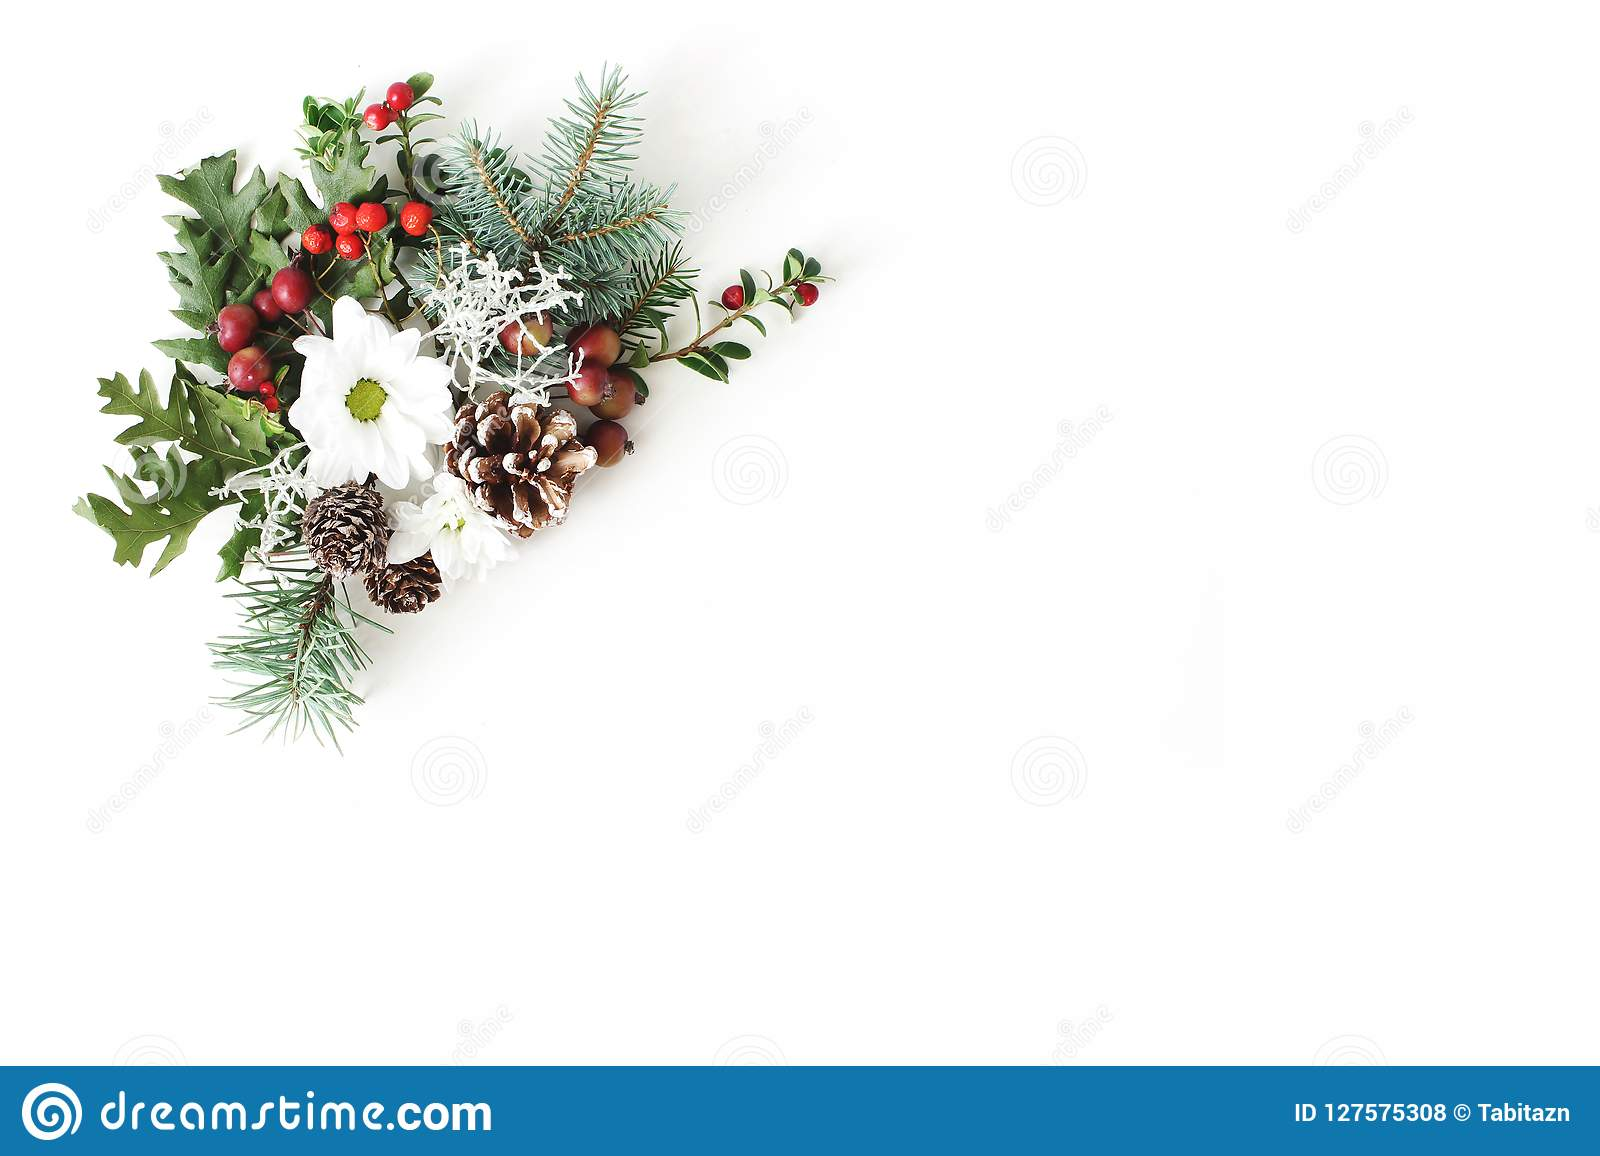 Christmas festive floral composition. Pine cones, fir, tree branches, oak leaves, red rowan berries and chrysanthemum